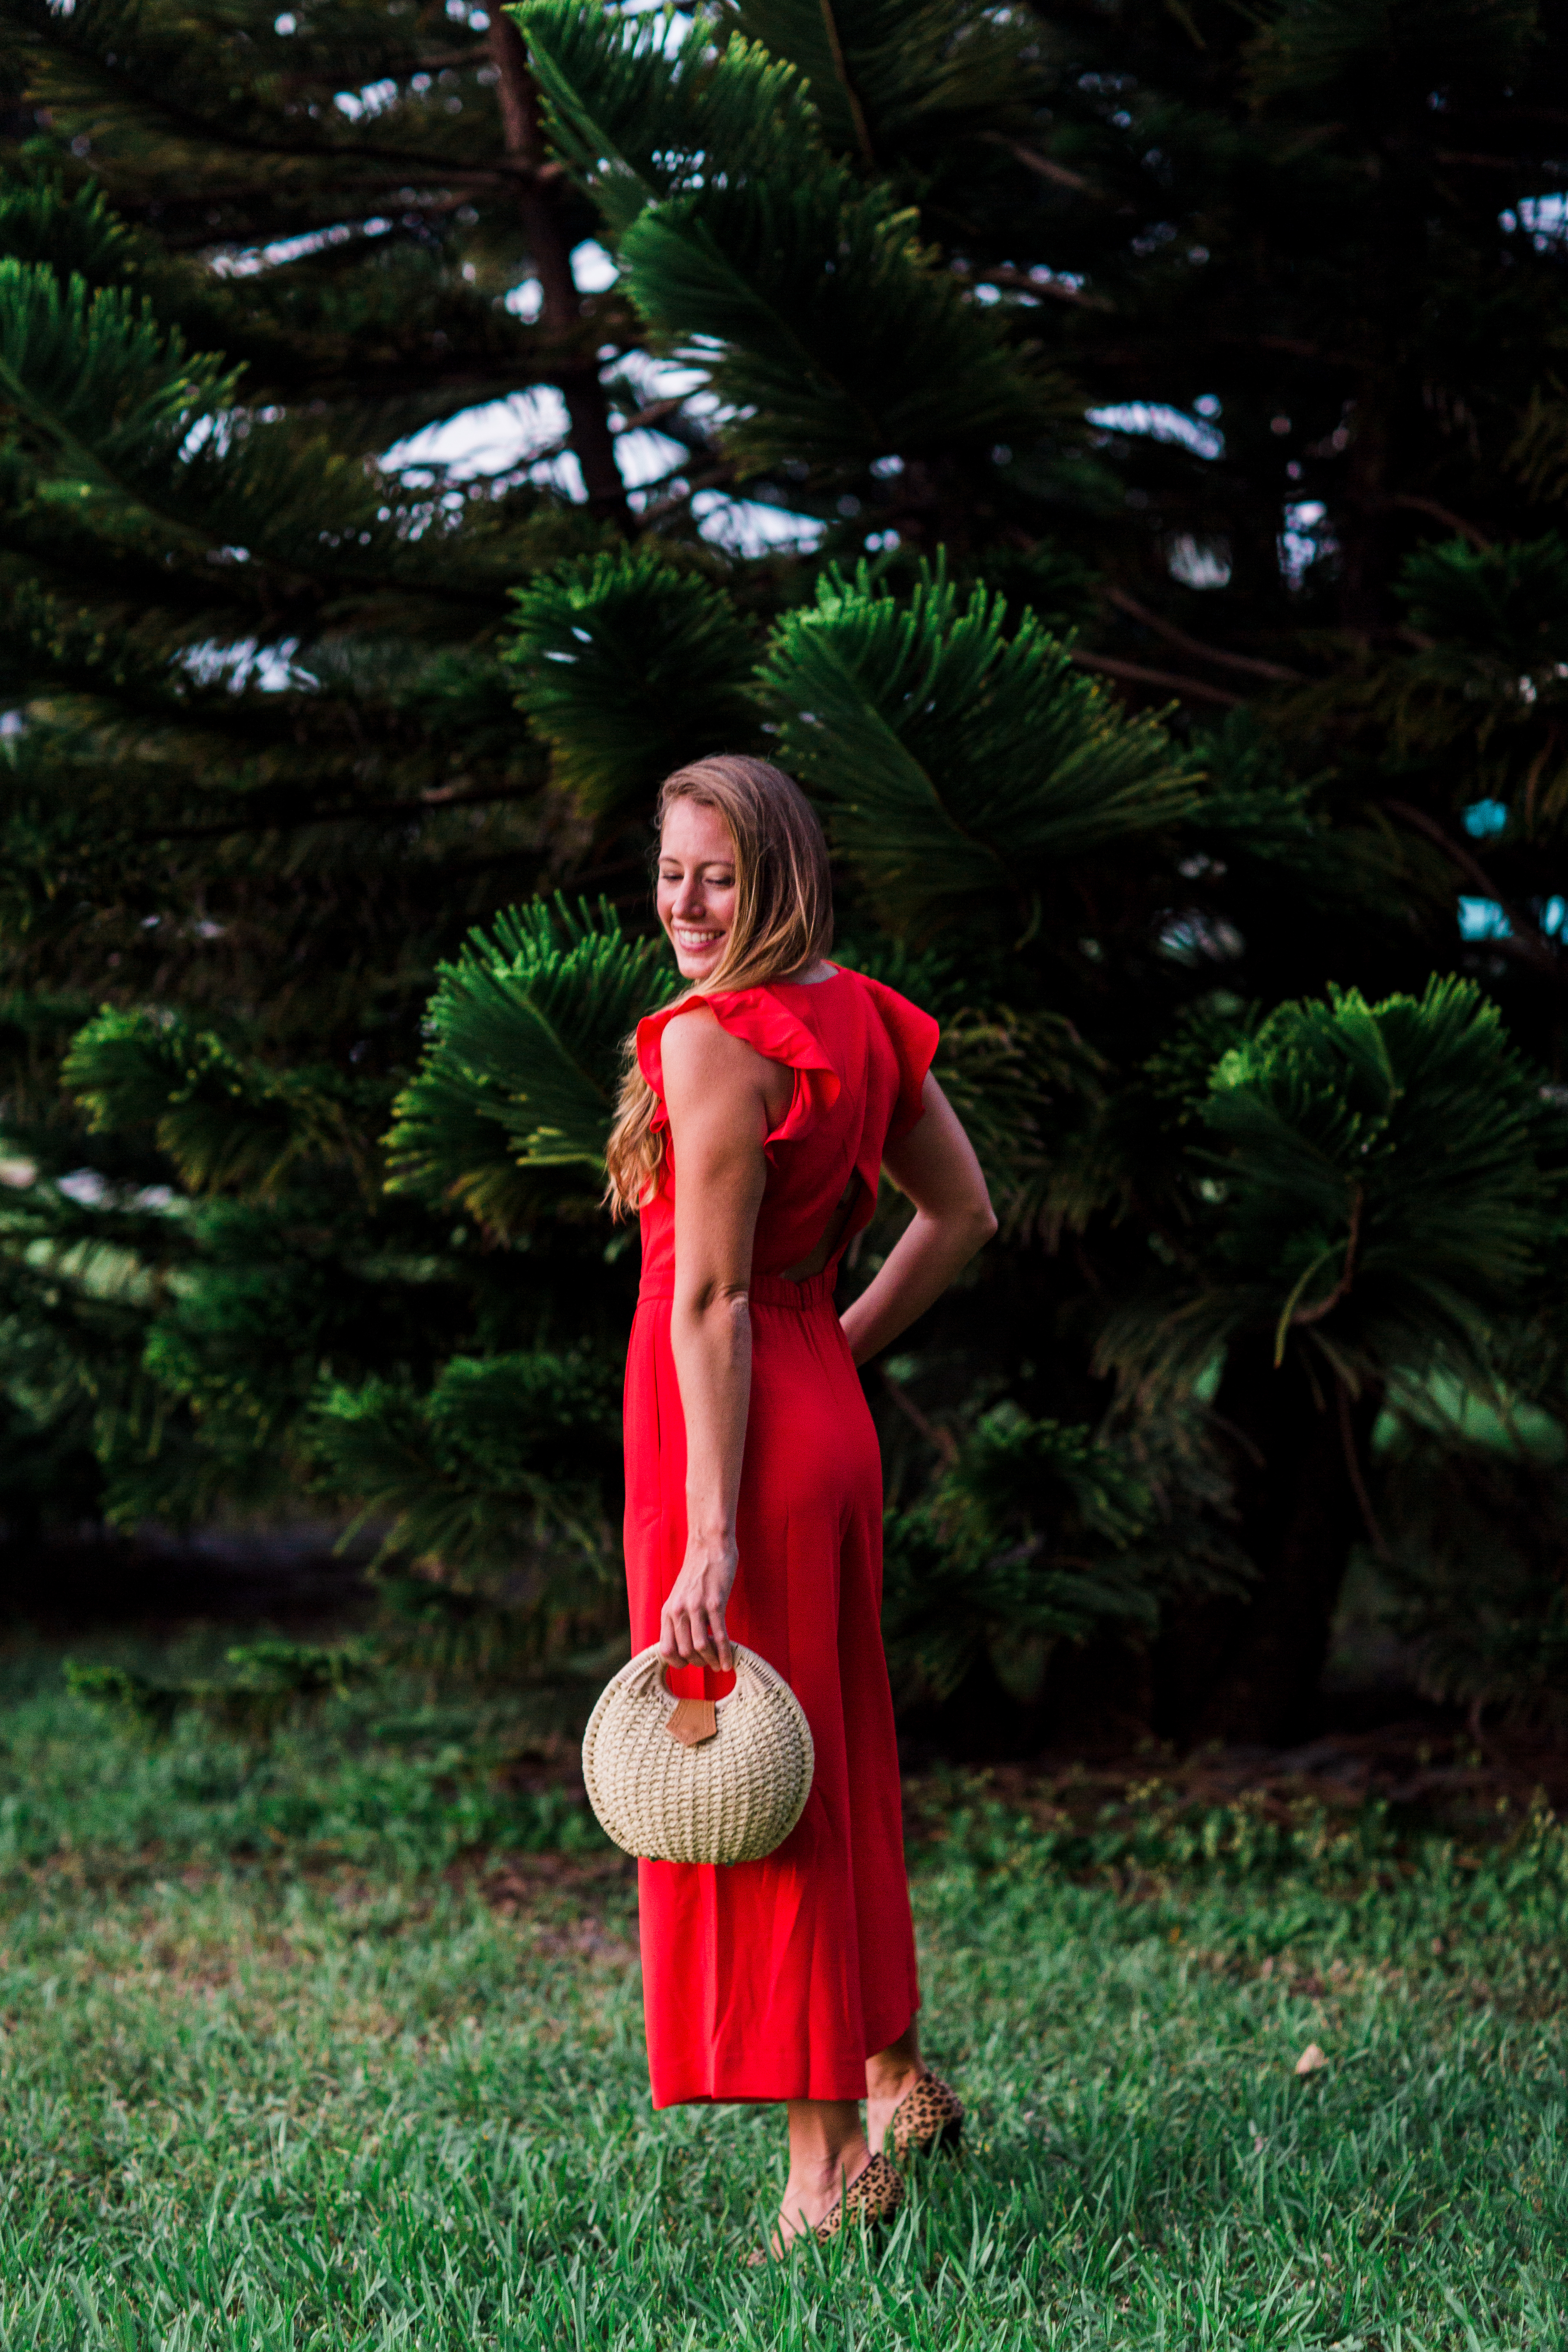 A Festive J.Crew Jumpsuit for Christmas / How to Style a Jumpsuit / How to Style a Jumpsuit for the Holidays / What to Wear to an Office Party / What to Wear on Christmas - Sunshine Style